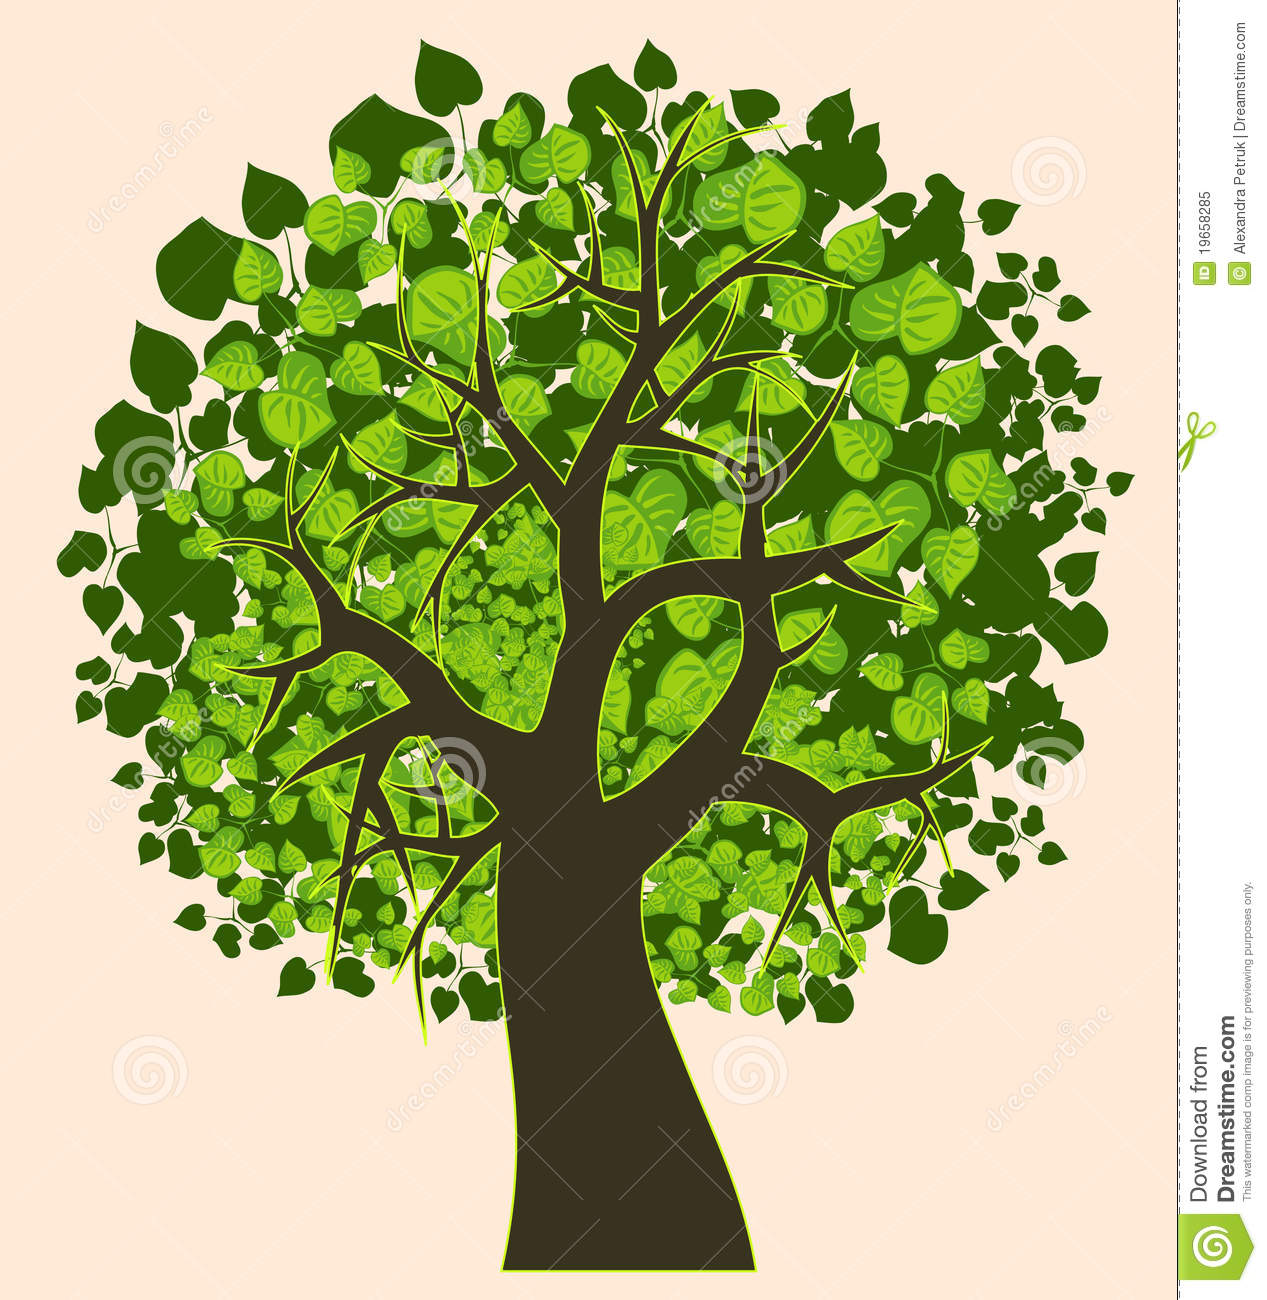 Illustration Of An Isolated Summer Tree Royalty Free Stock Photo